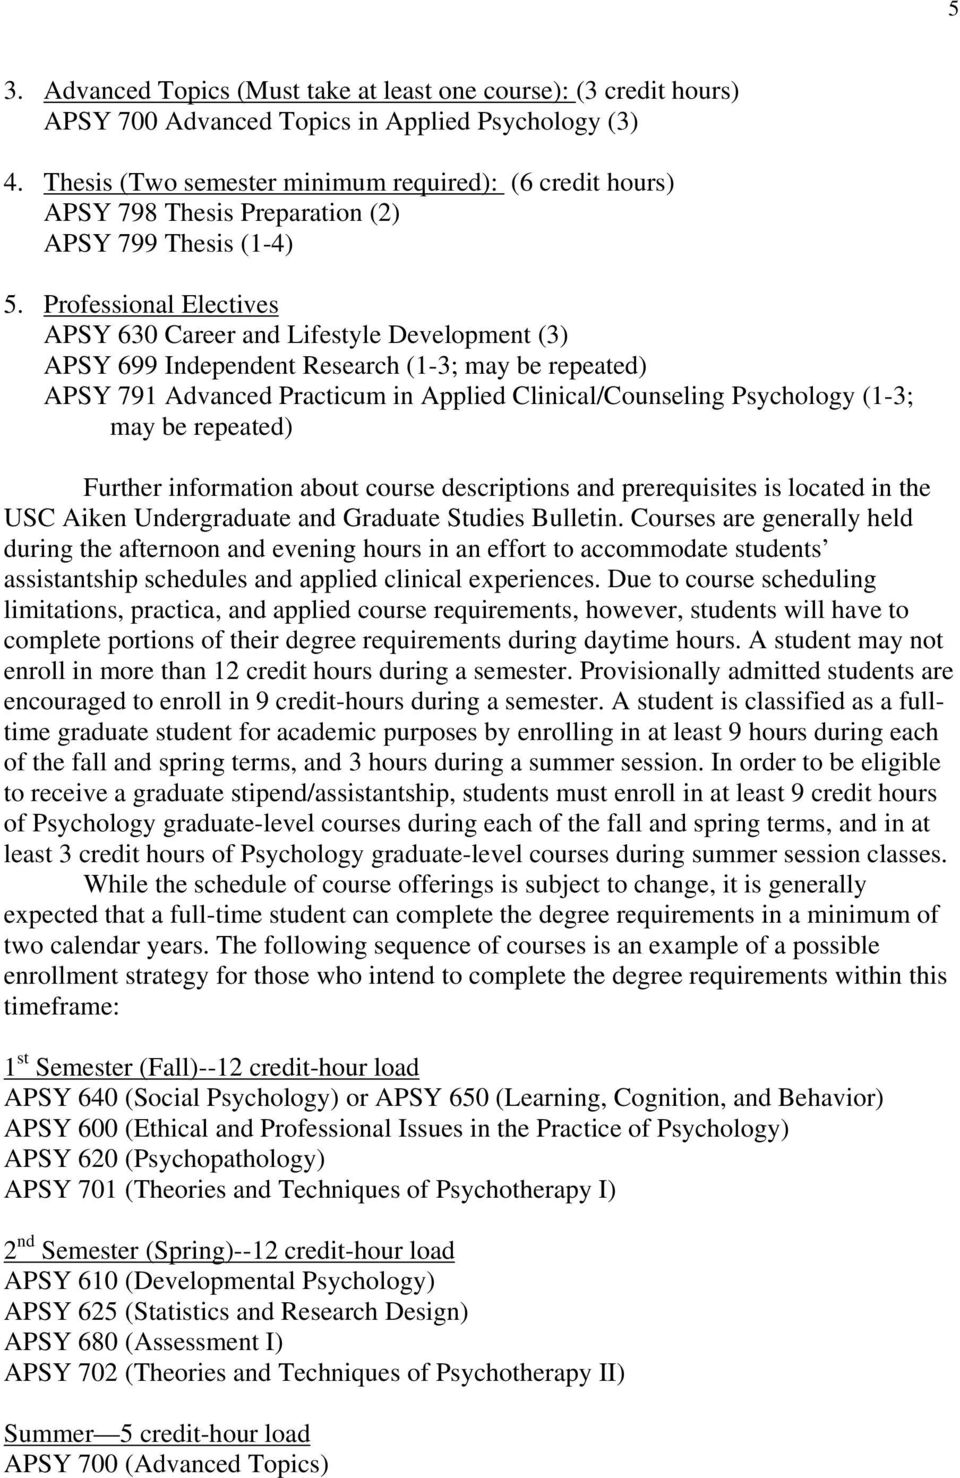 Professional Electives APSY 630 Career and Lifestyle Development (3) APSY 699 Independent Research (1-3; may be repeated) APSY 791 Advanced Practicum in Applied Clinical/Counseling Psychology (1-3;